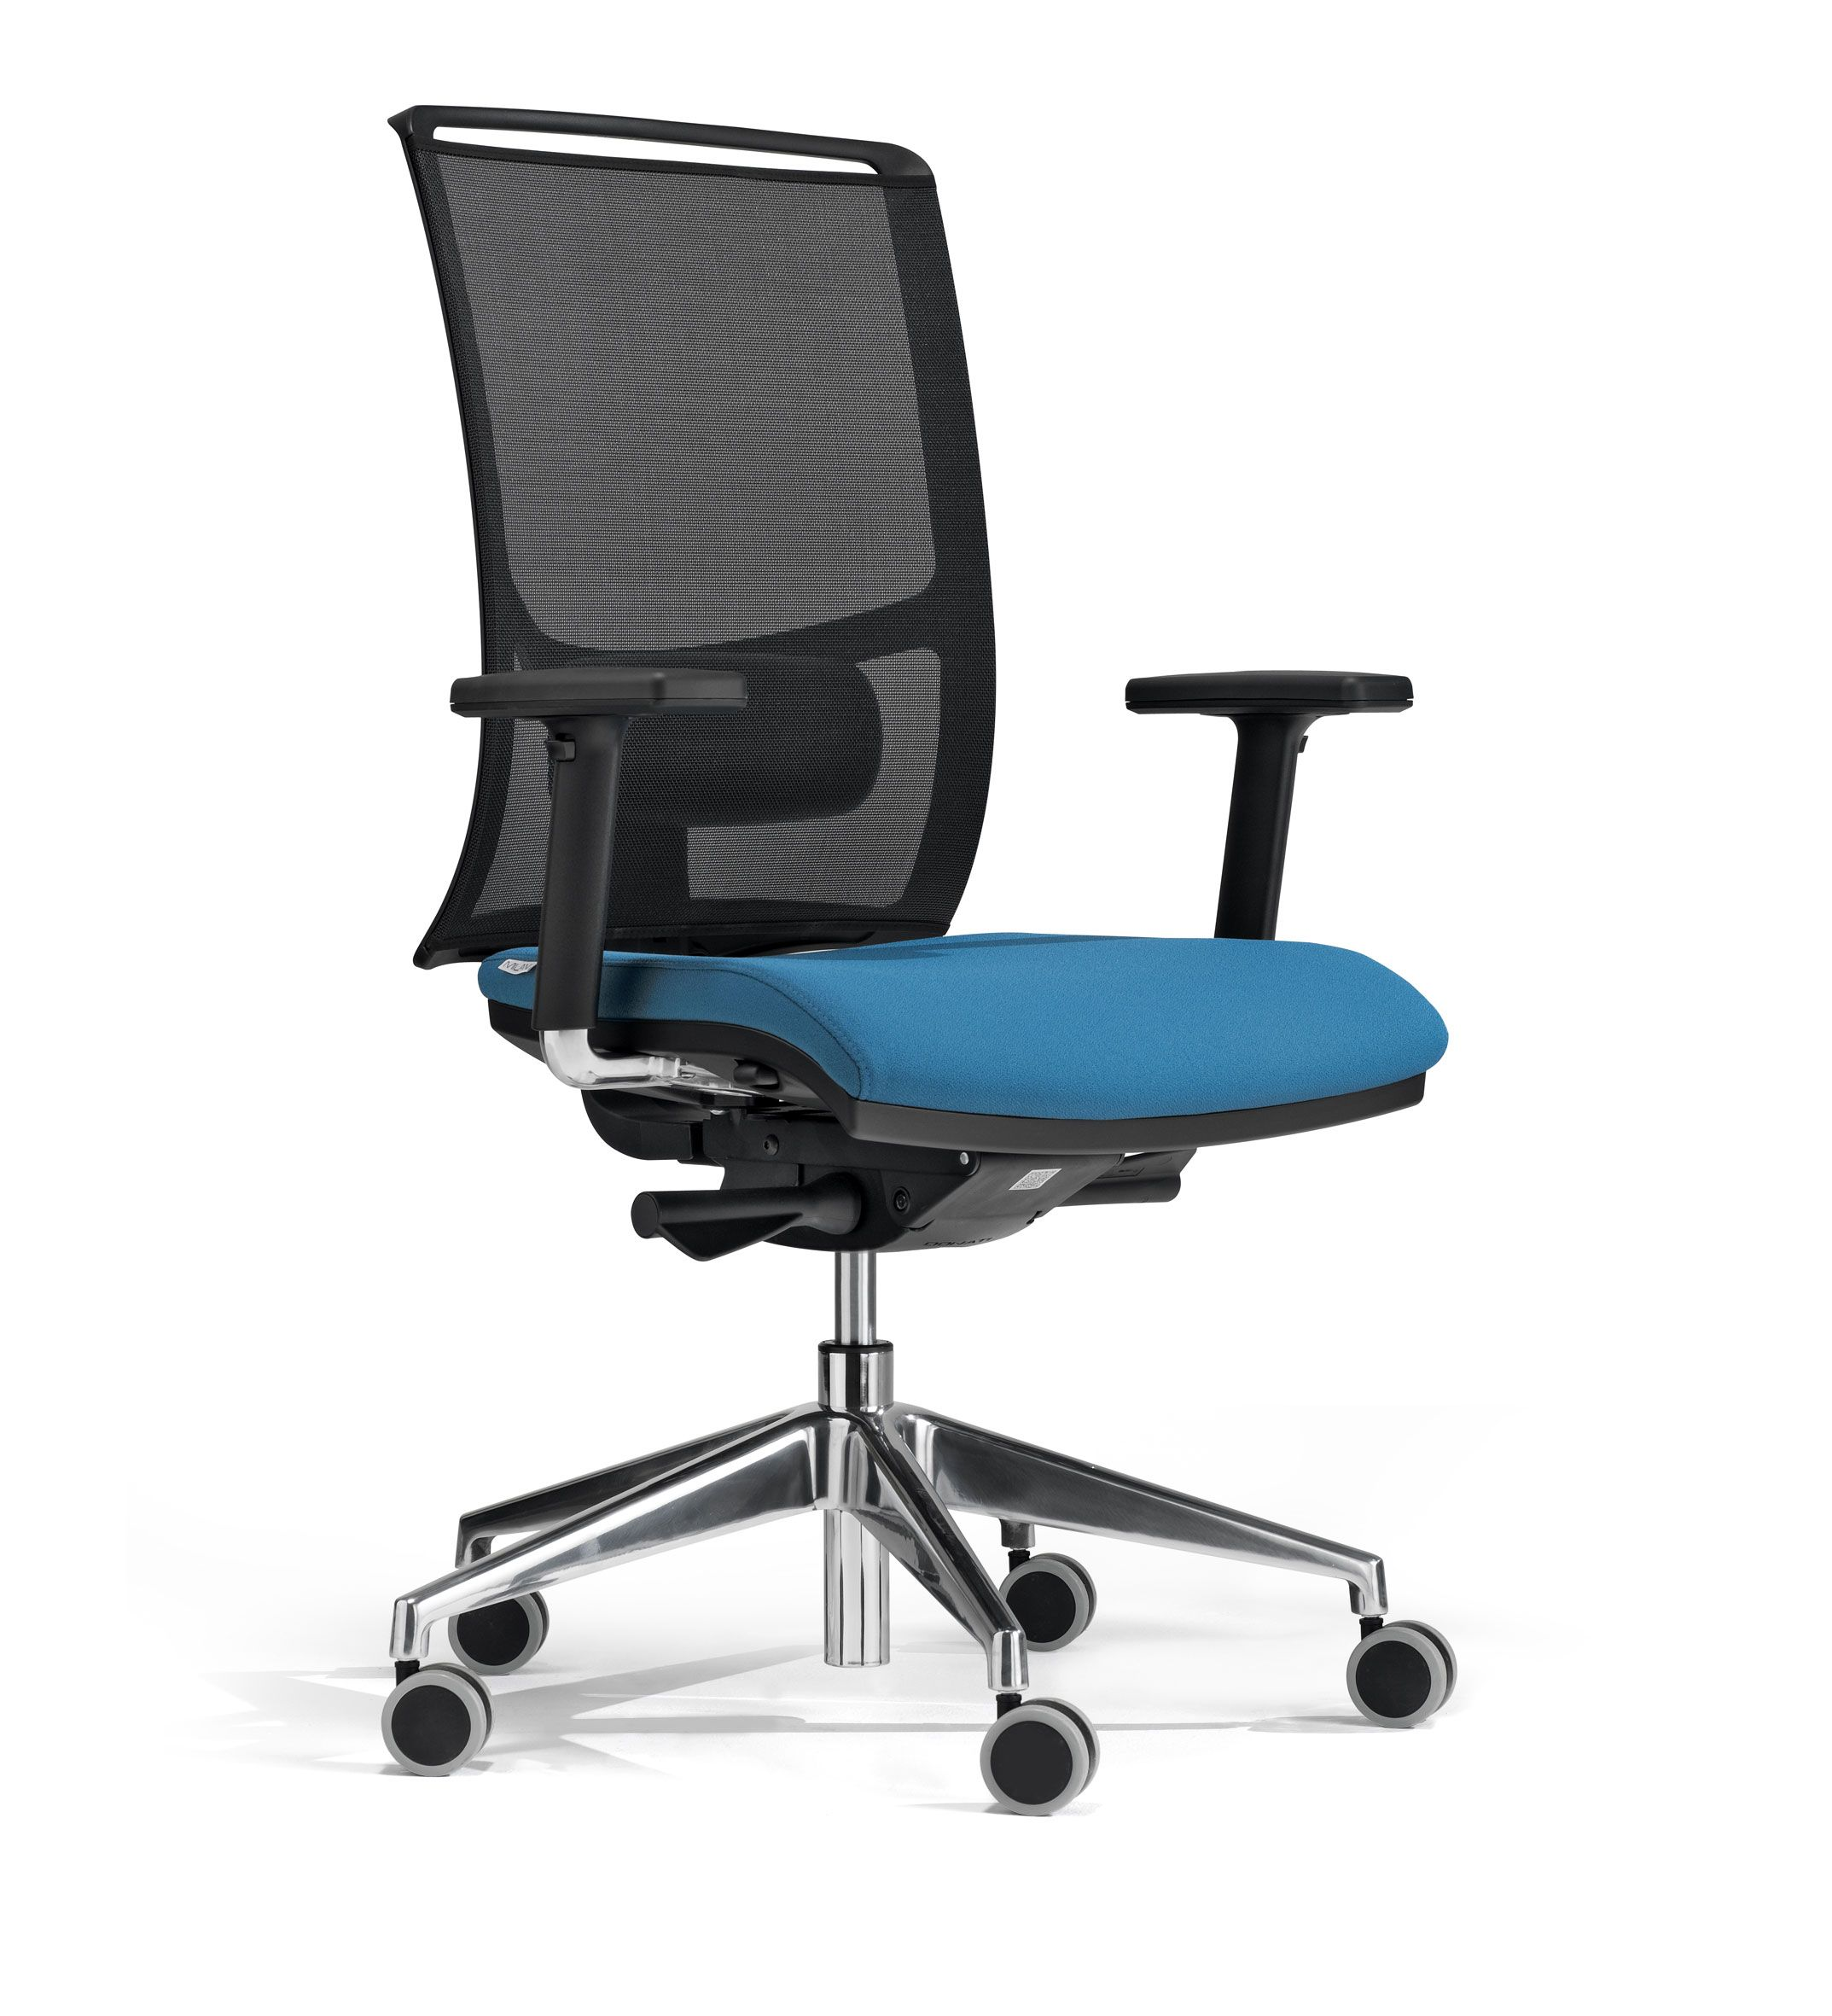 Milani Zed 8 Available Mesh Colors Synchronized Mechanism With Sliding Seat Independent Height Adjustable Backrest Office Chair Lumbar Support Desk Chair